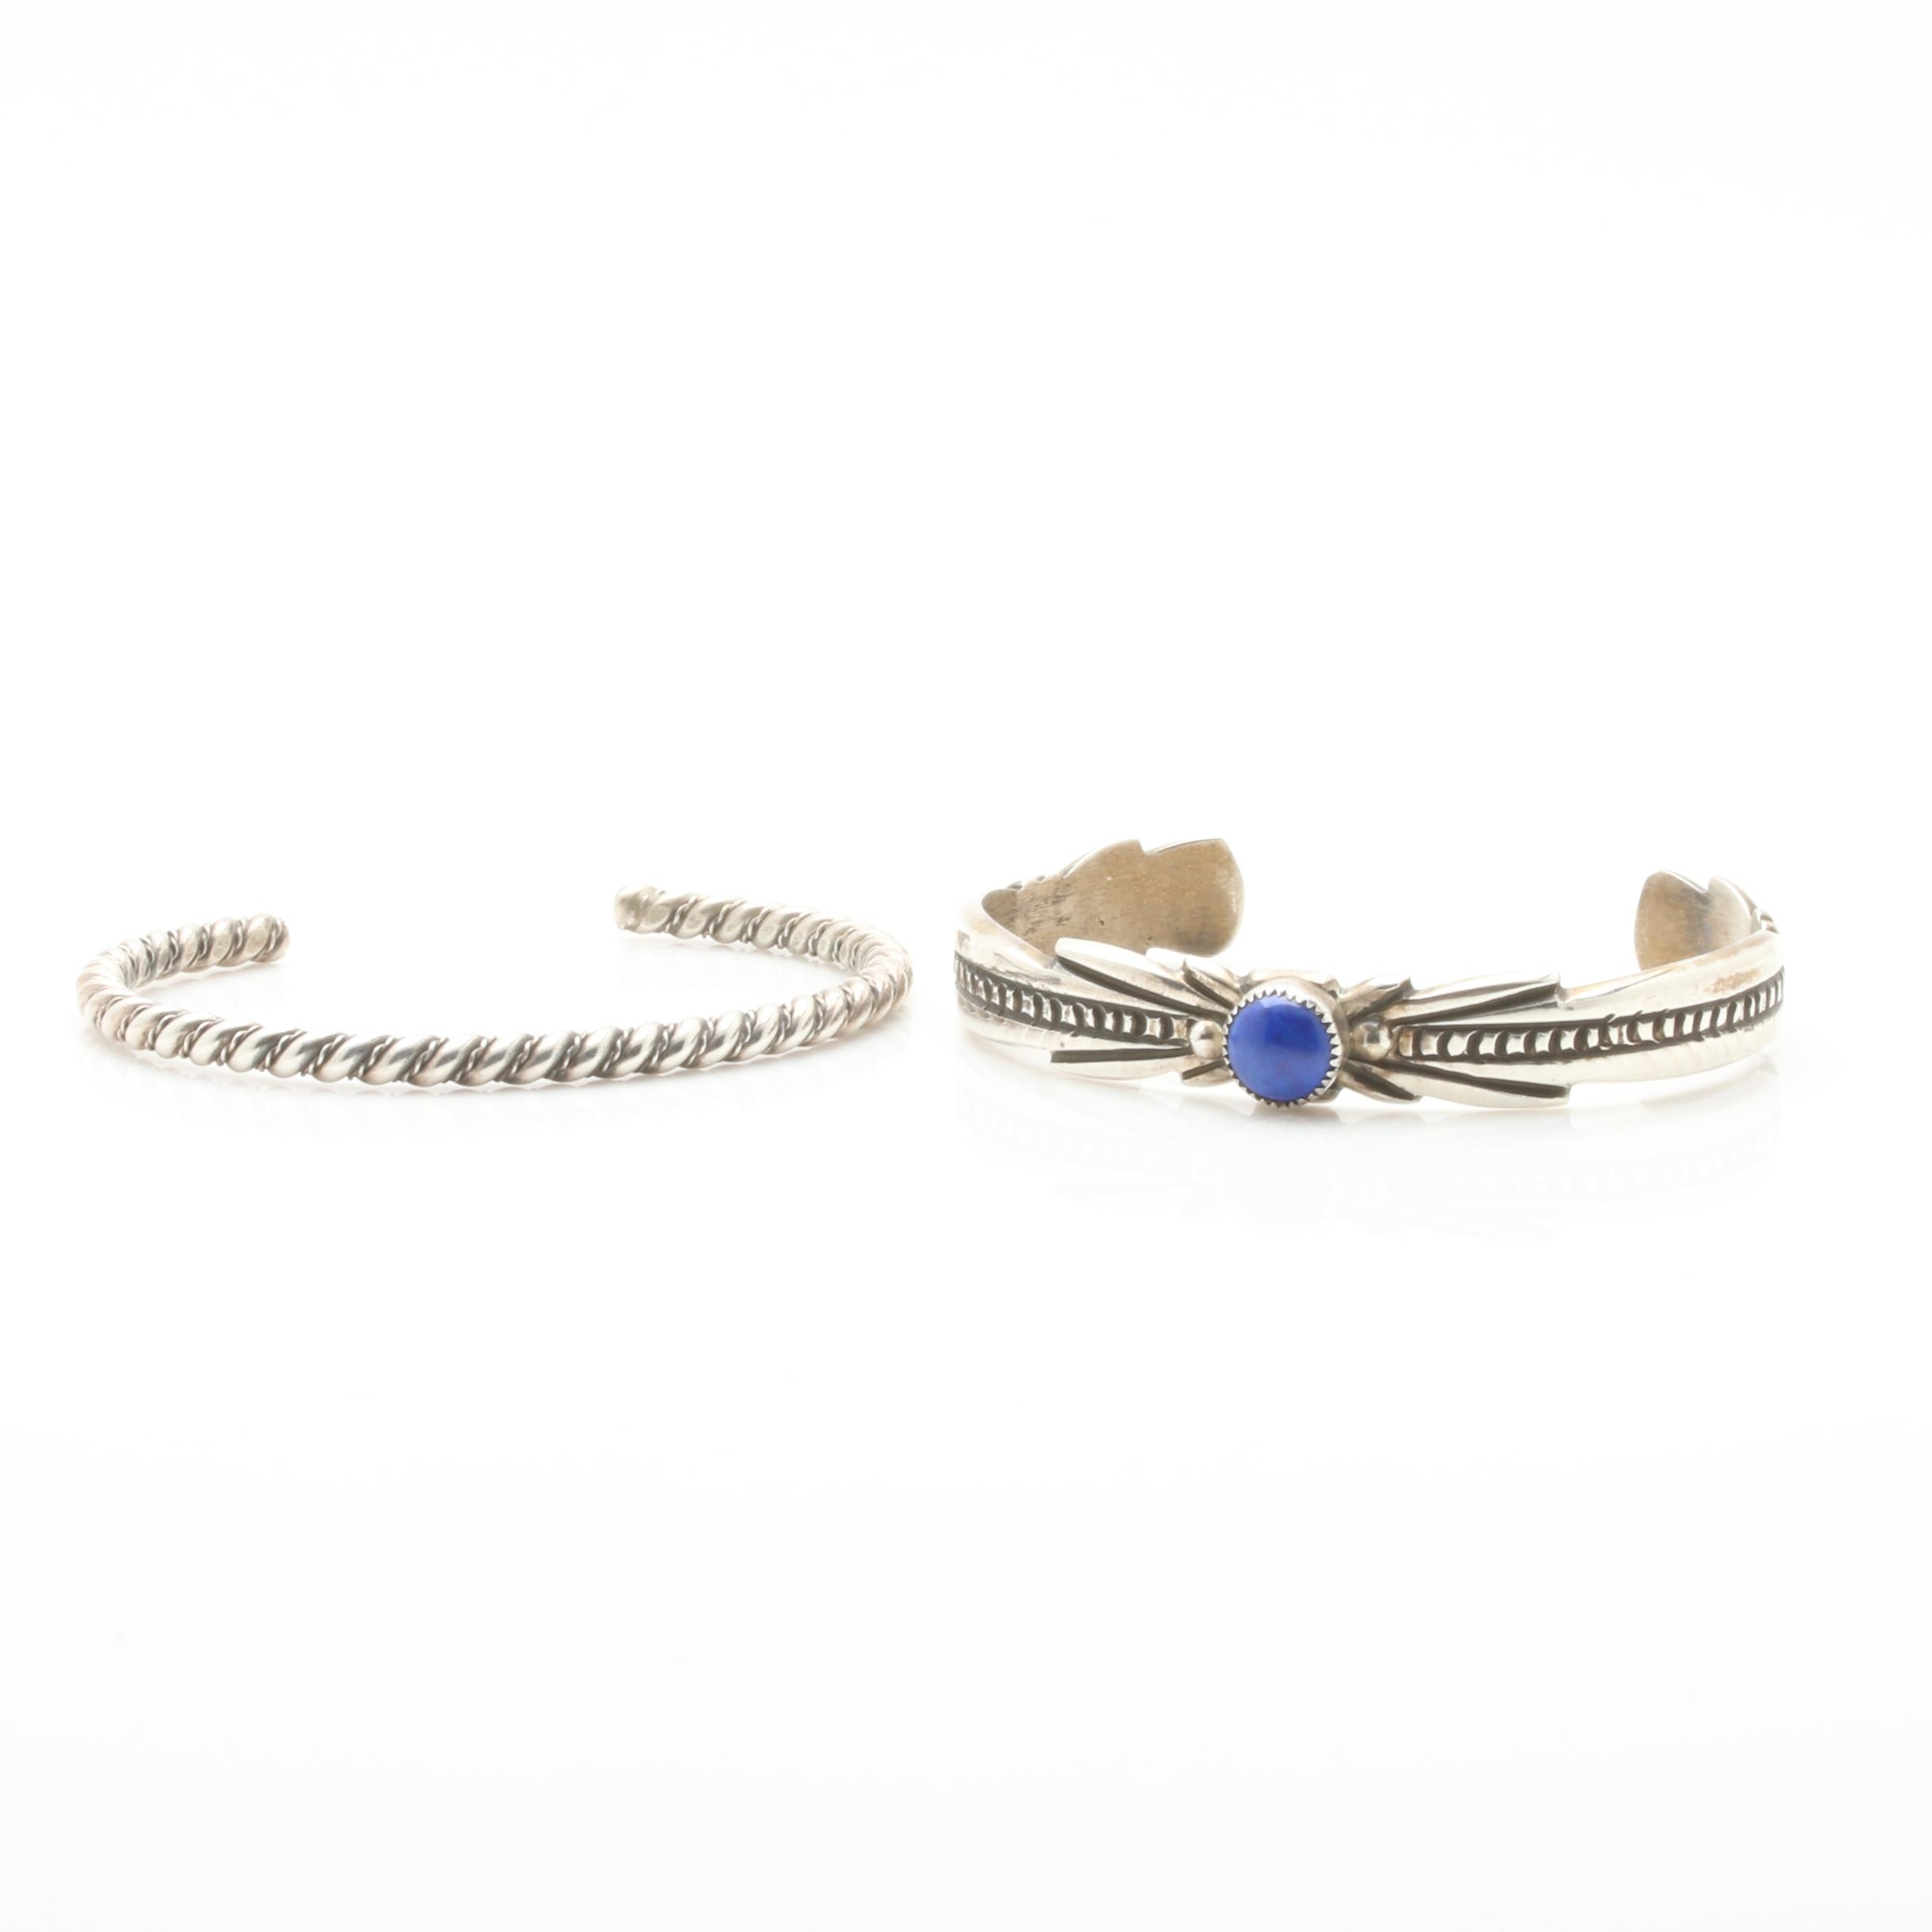 Sterling Silver Cuff Bracelet Selection with Dyed Lapis Lazuli